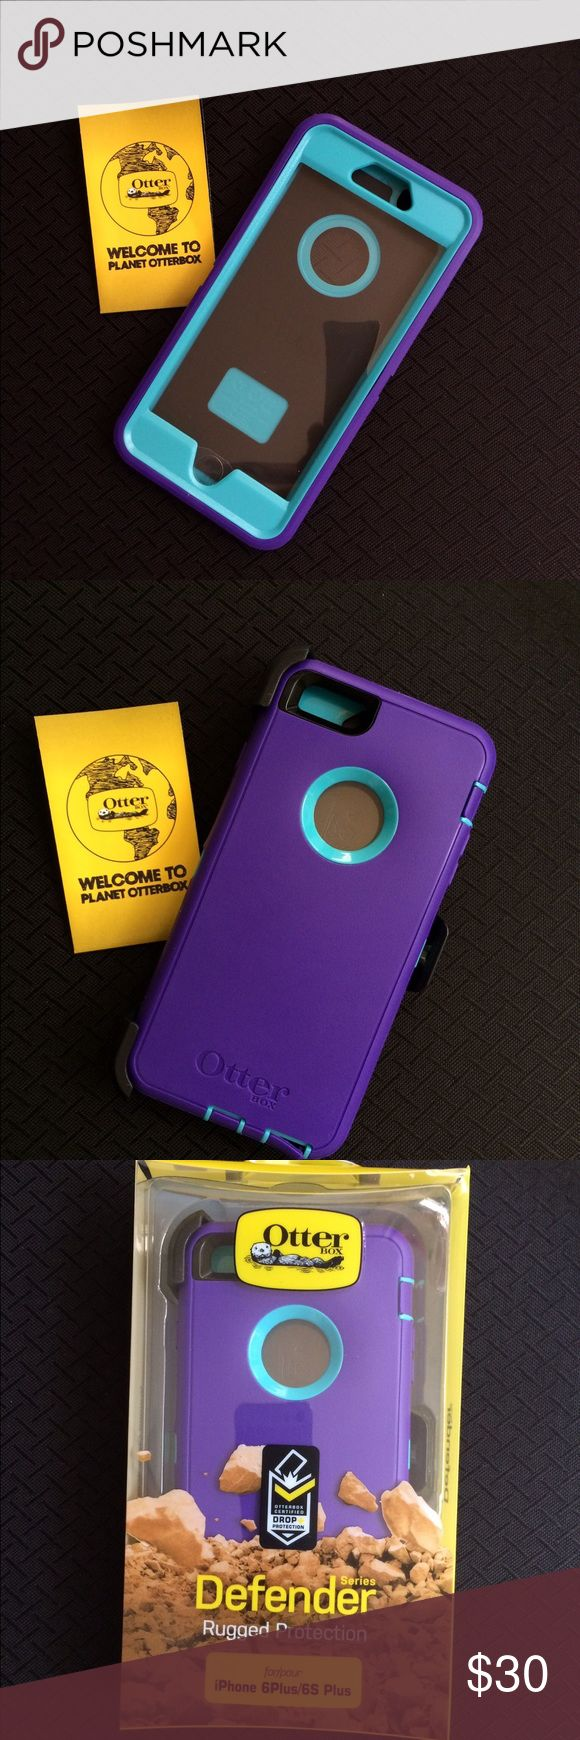 iPhone 6 Plus Otterbox Defender Case Otter-box  For 6 & 6S   ✅ ✅Please read before buying! ✅ Next Day Shipping !! ✅Only for iPhone 6 & 6S  ❌Not iPhone Plus & 6S Plus    Customer service is my main goal, I am always willing tomake my customer happy if aproblem arises. Thank you.  Otter Box Certified Drop+ Protection  you can be sure your device is protected from the wear and tear of everyday use. OtterBox Accessories